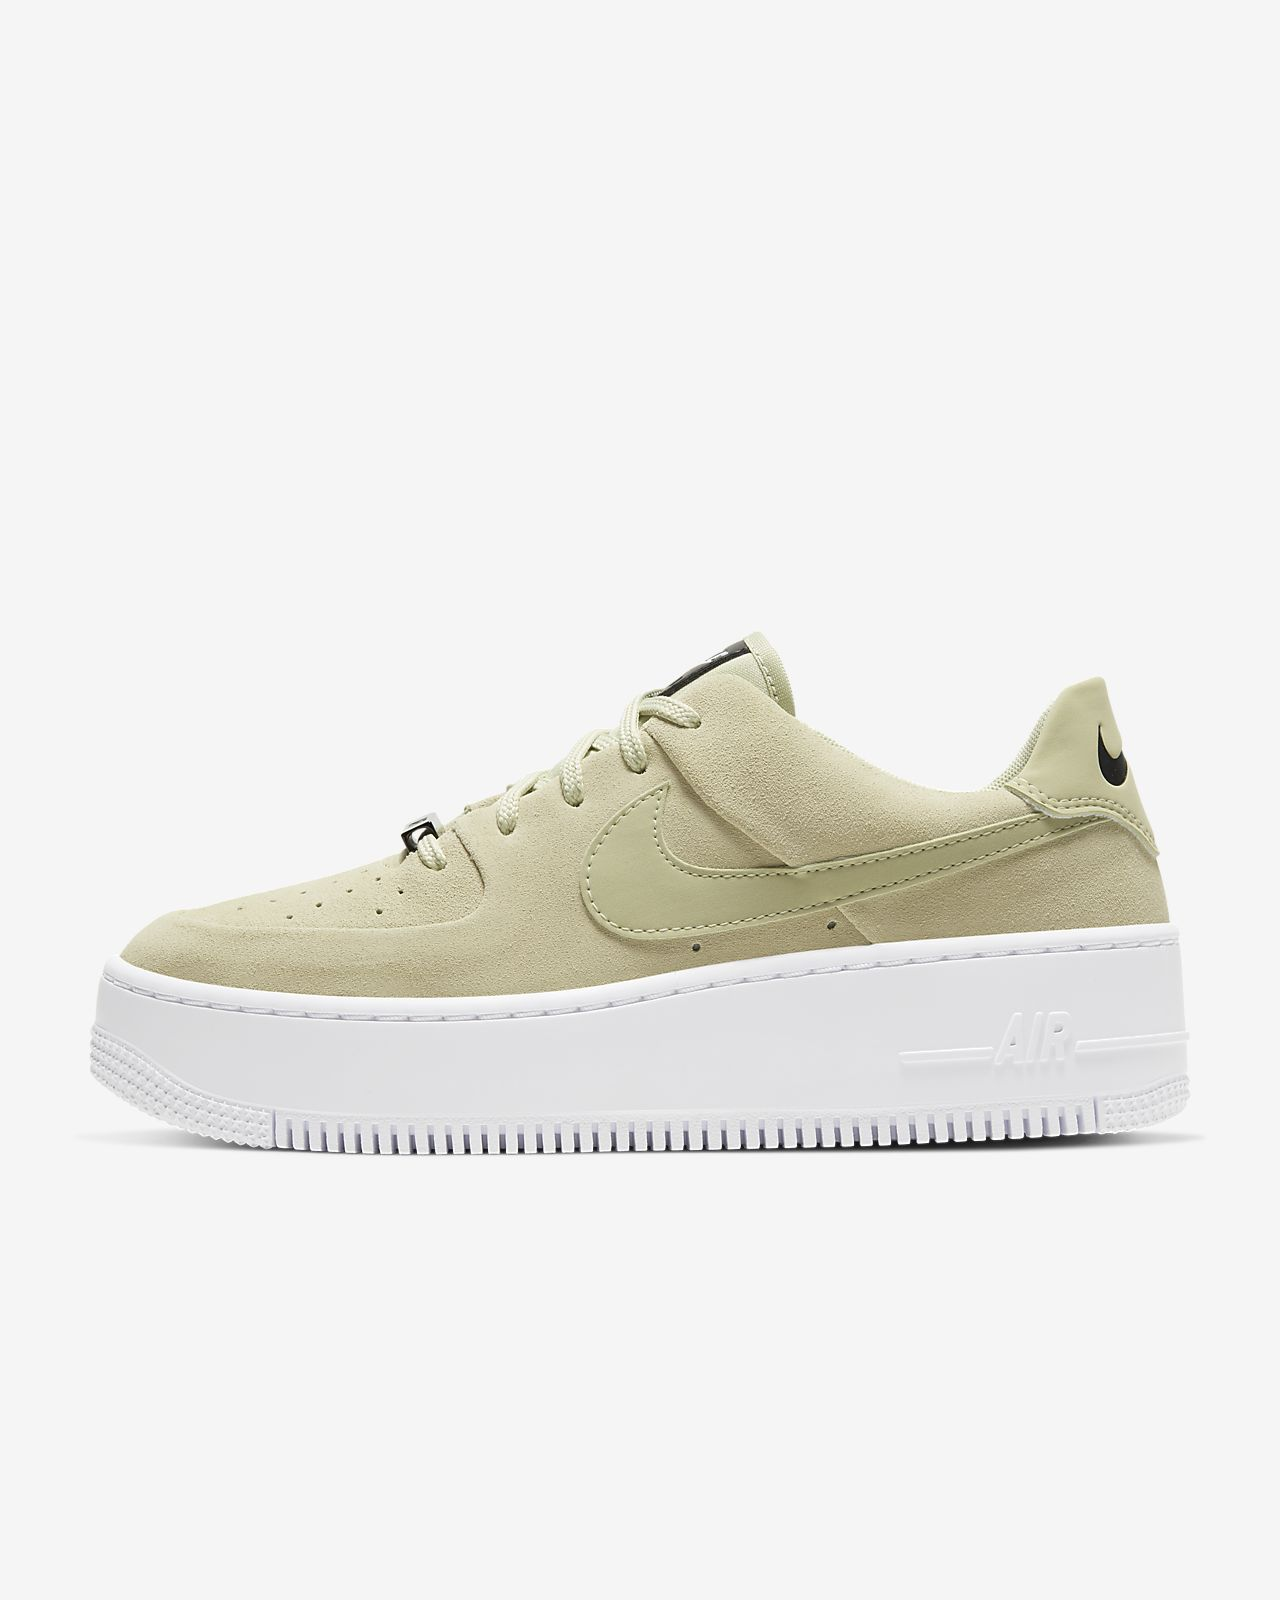 nike sko priser, Nike Sportswear Air Force 1 Sage Sneakers